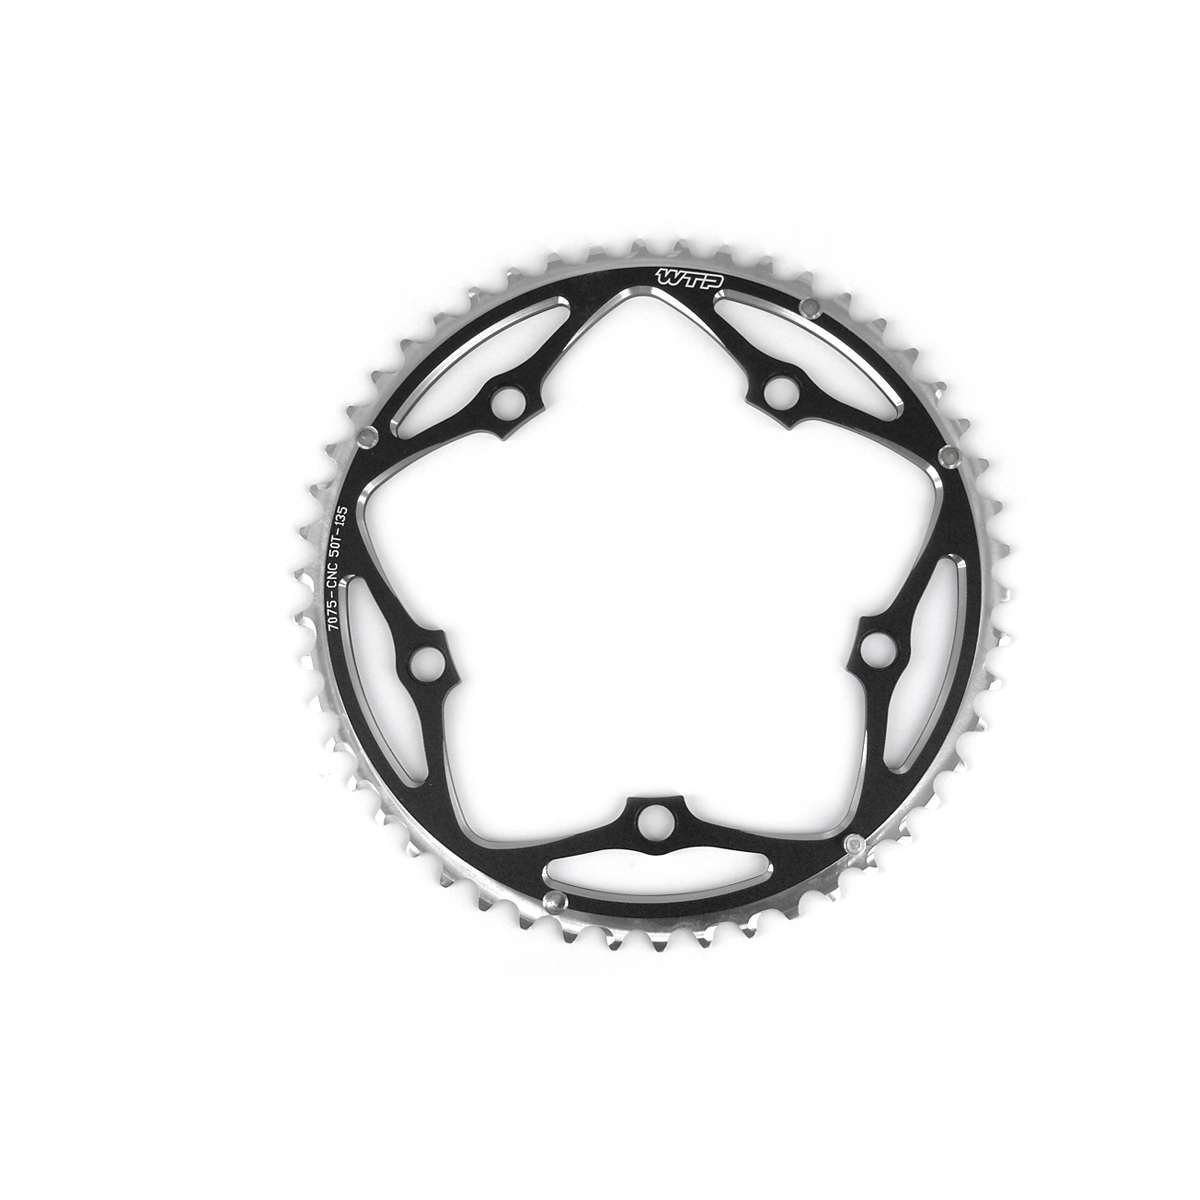 Plateau WTP 50 dents route Campagnolo 135 mm Noir